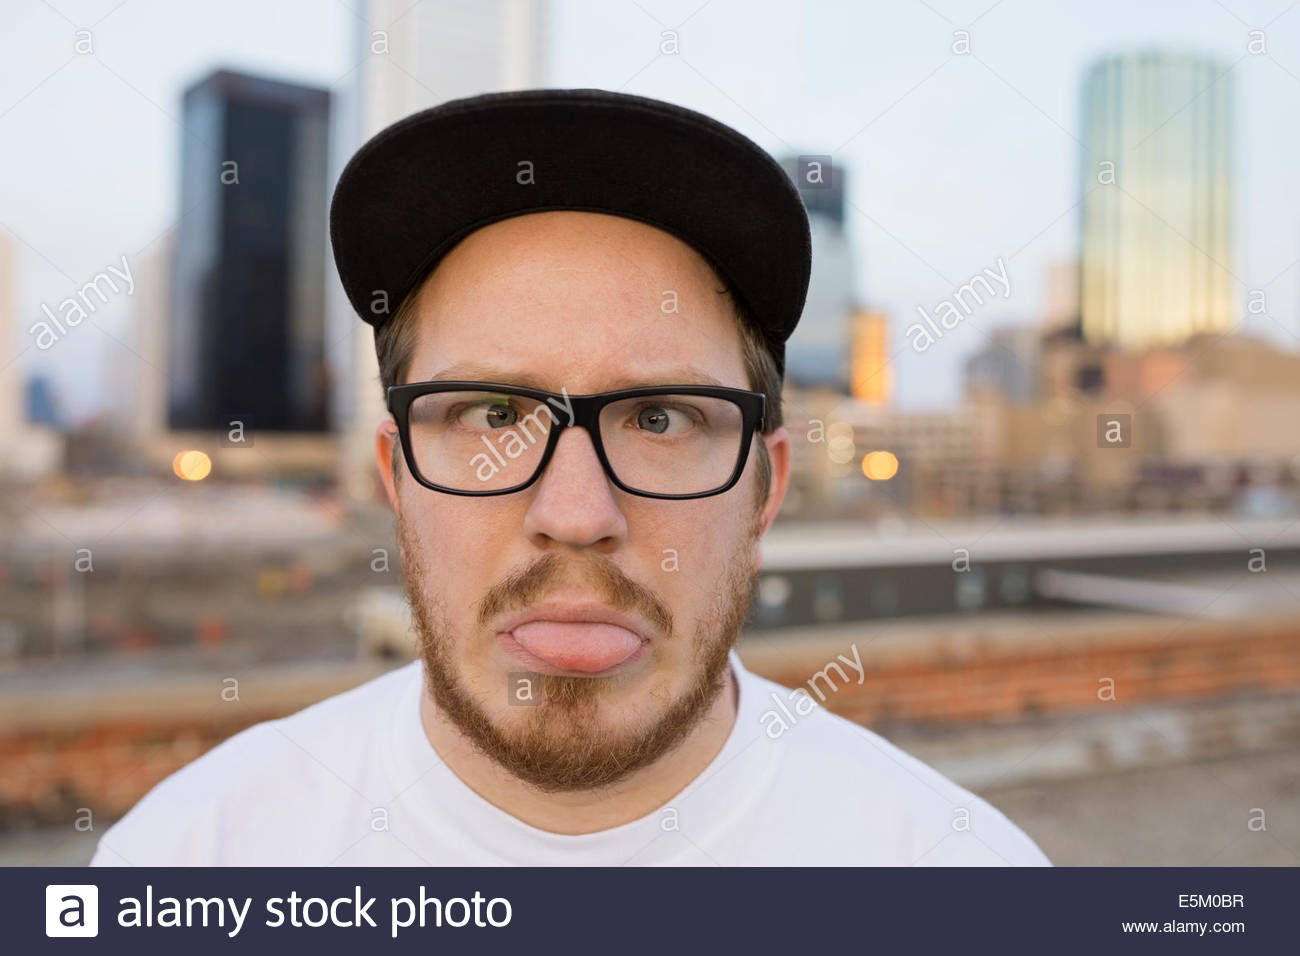 Portrait of man making a face on urban rooftop Photo Stock